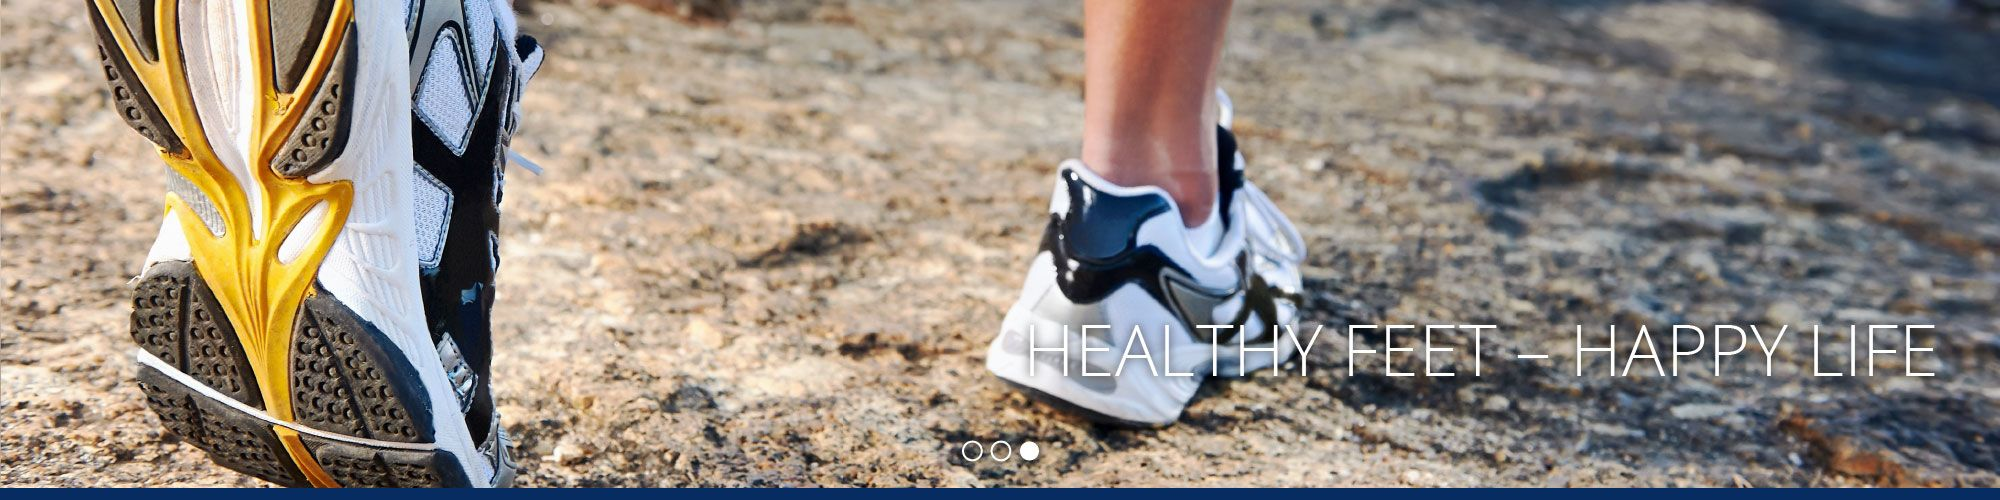 Healthy Feet – Happy Life | jogging